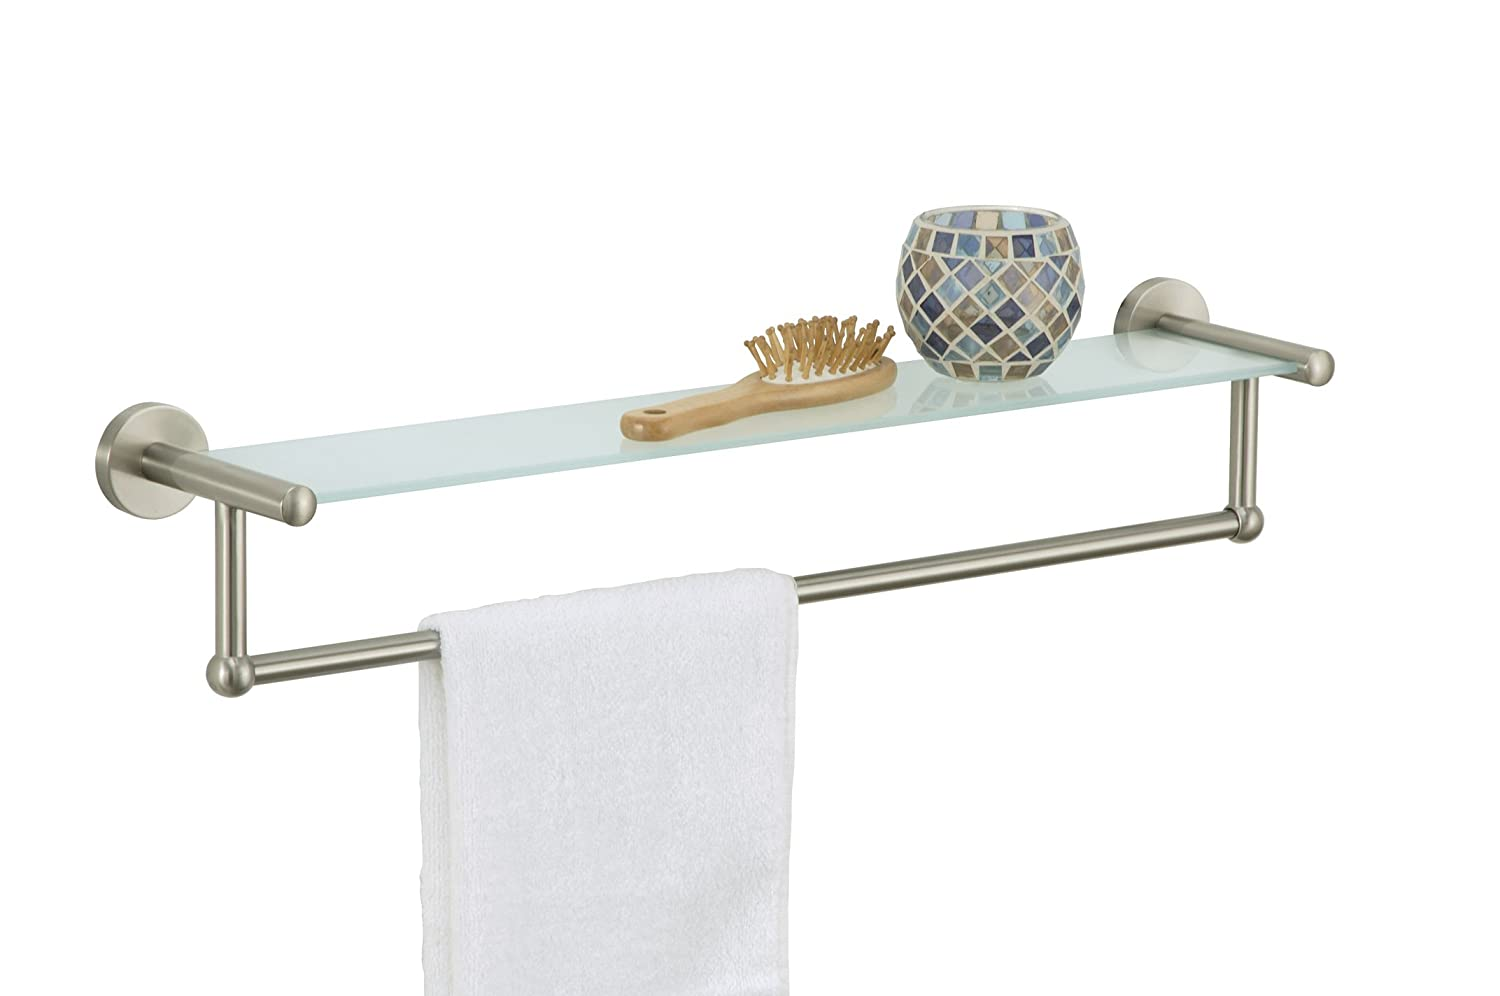 Amazoncom Organize It All Satin Nickel Glass Shelf With Towel - Bathroom wall shelf with towel bar for bathroom decor ideas